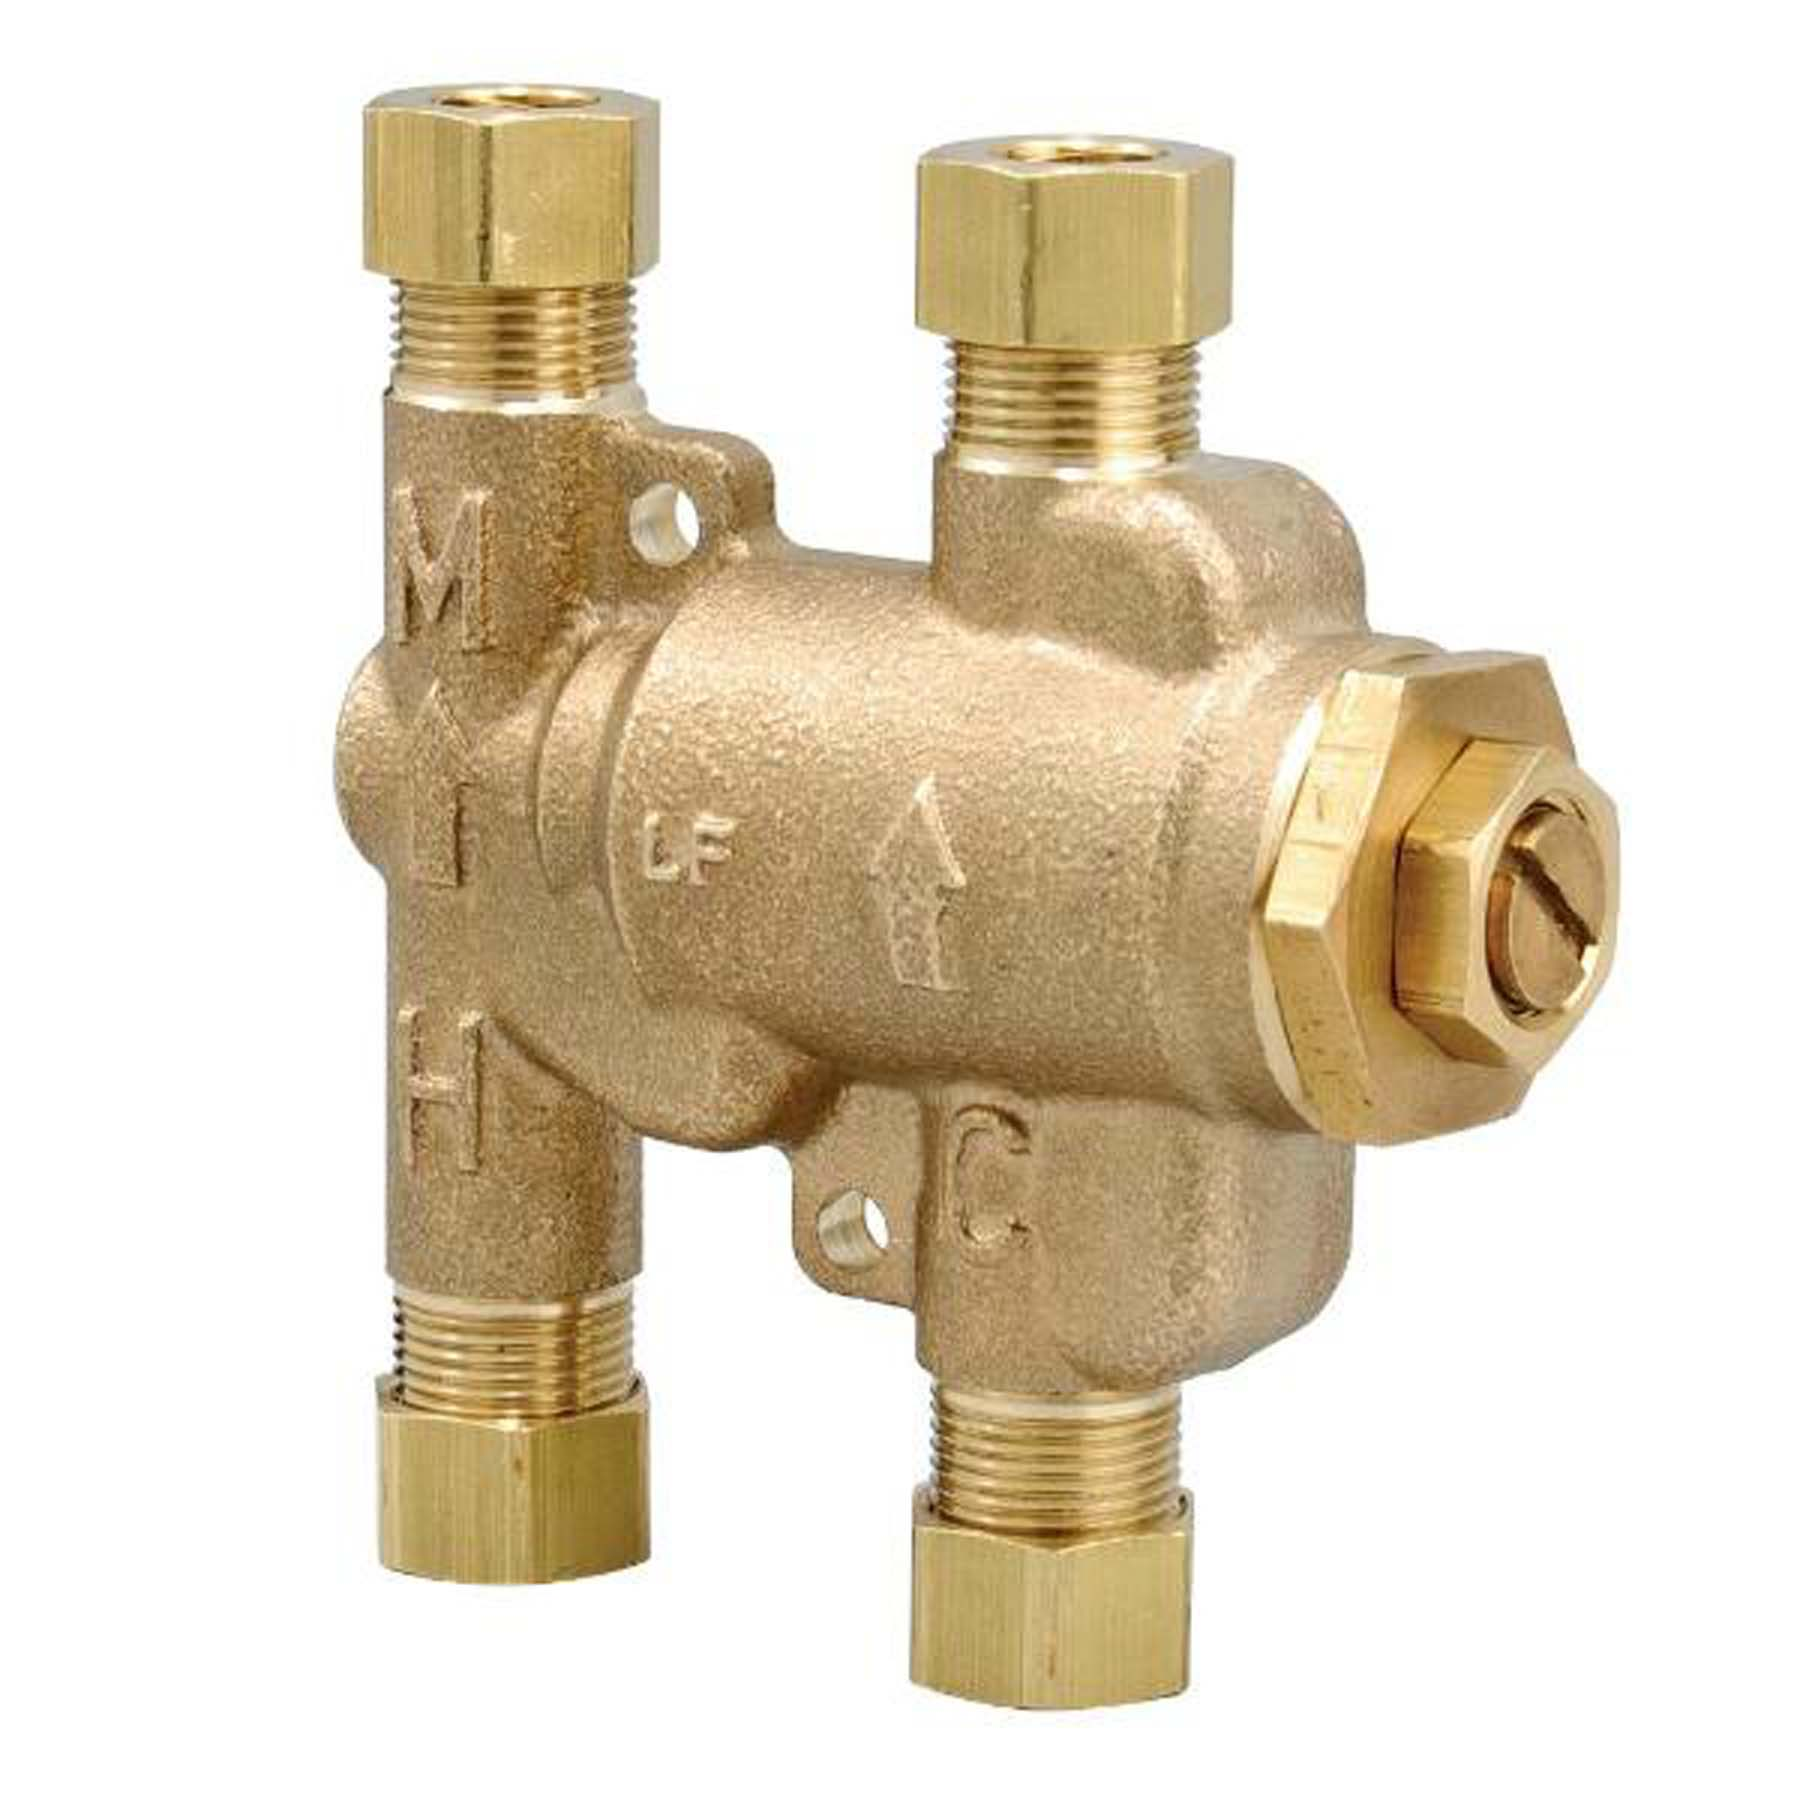 Lead-free mini thermostatic mixing valve for ligature resistant faucets